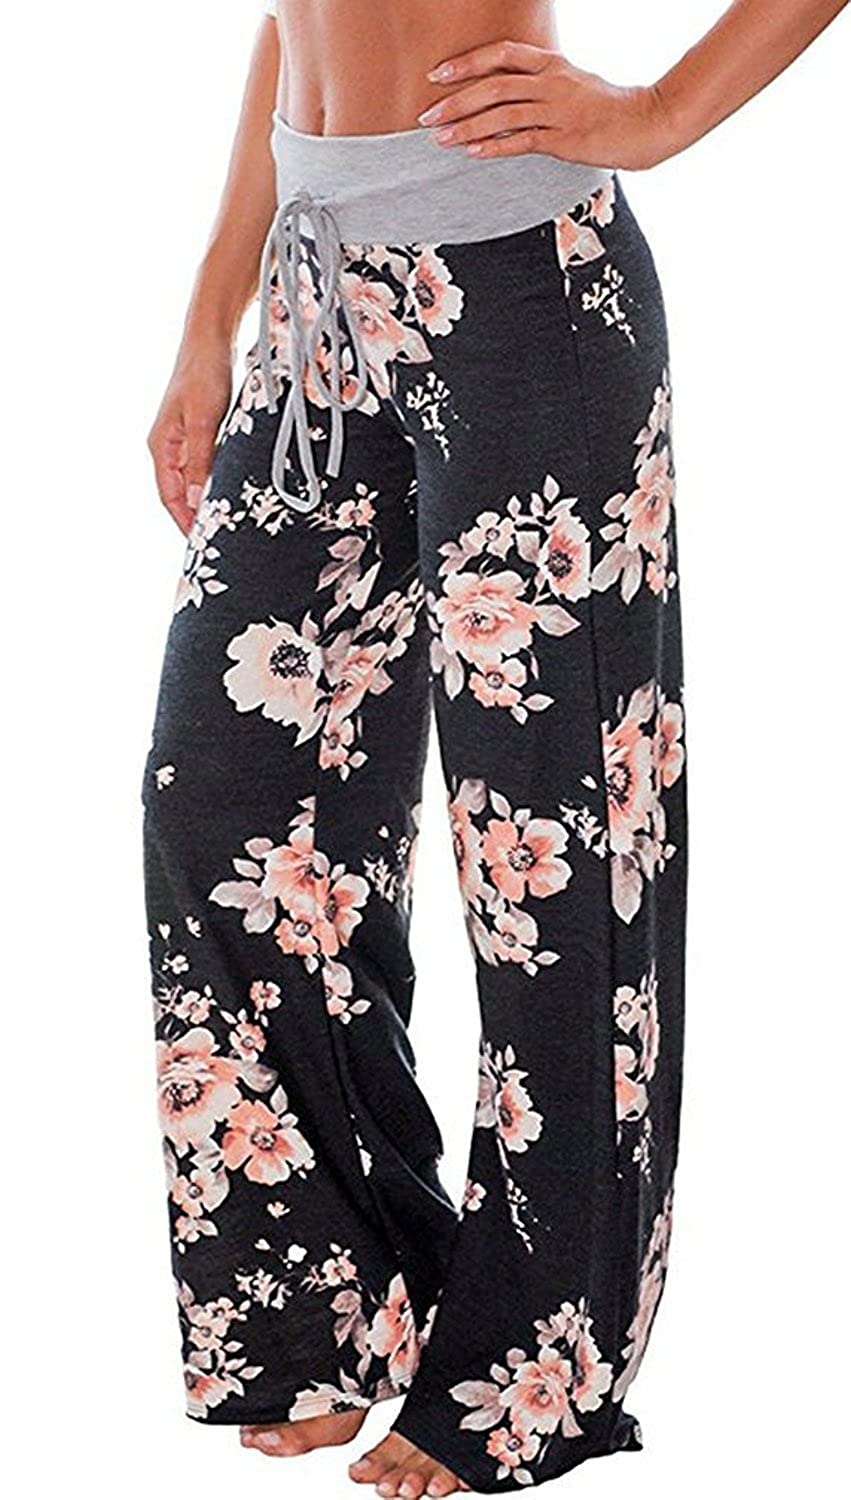 7a7a943132 AMiERY Women s Comfy Casual Pajama Pants Floral Print Drawstring Palazzo Lounge  Pants Wide Leg at Amazon Women s Clothing store